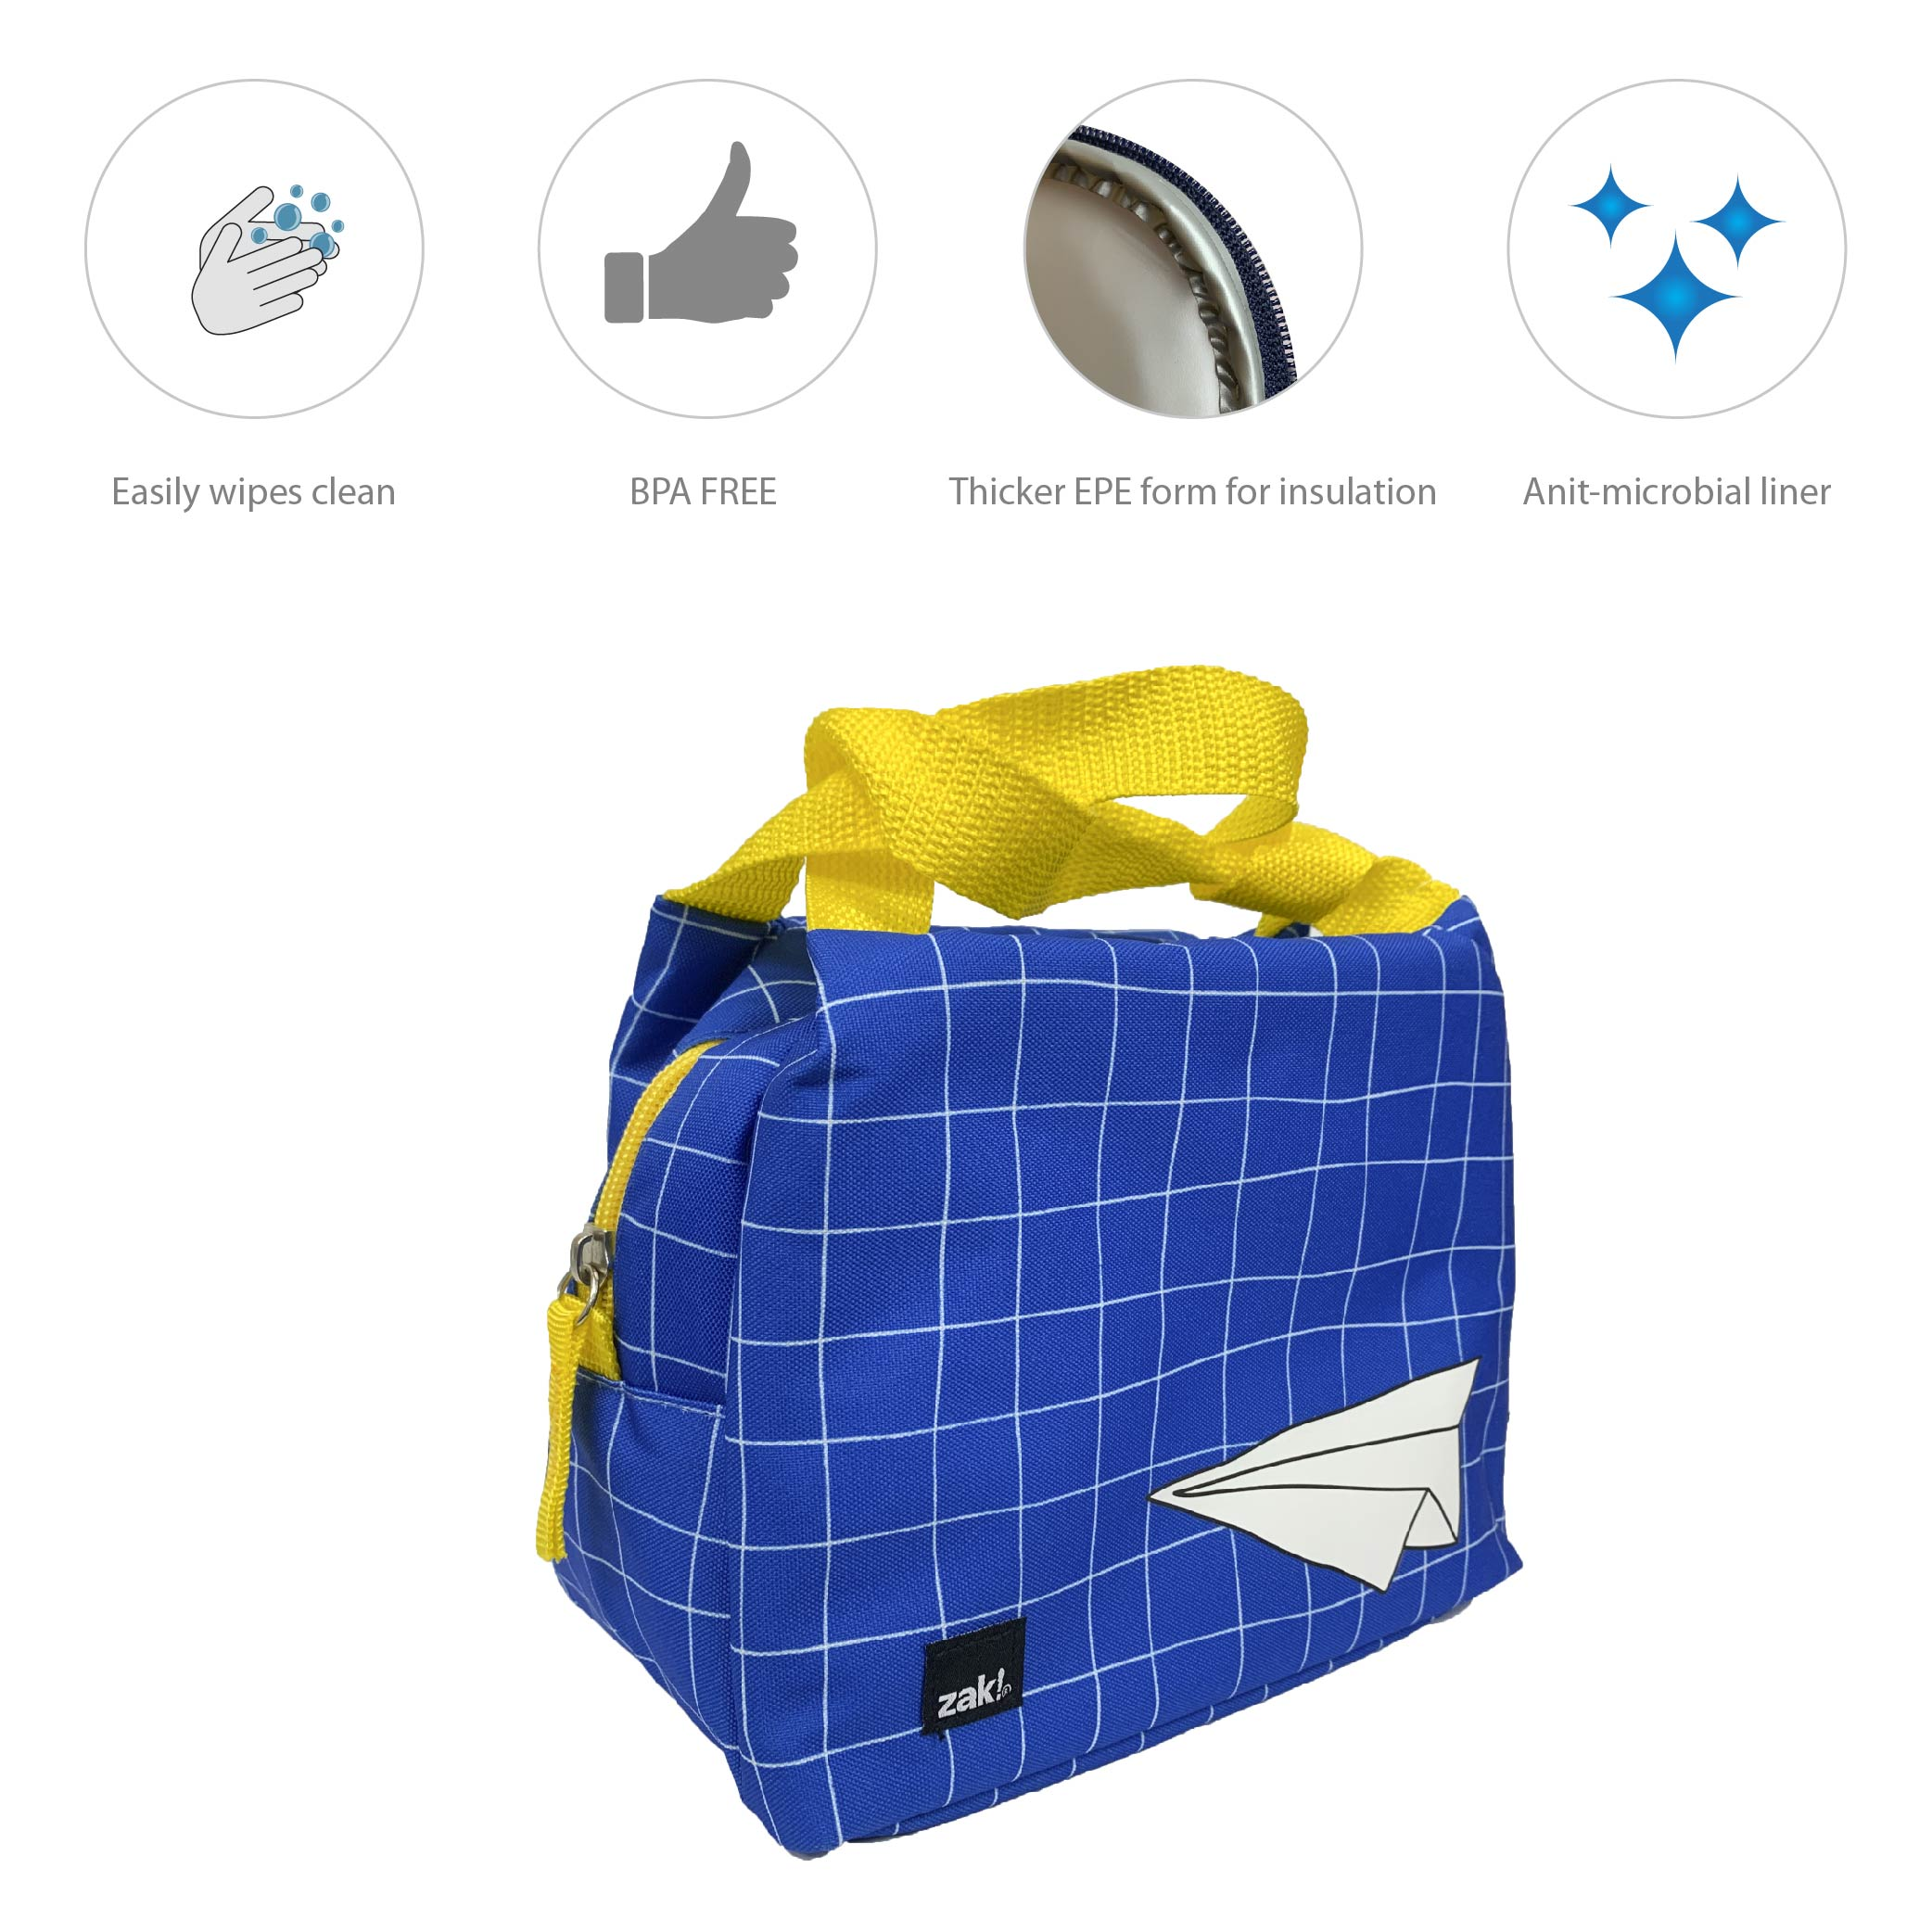 Grid Lock Purse Style Insulated Reusable Lunch Bag, Planes slideshow image 5